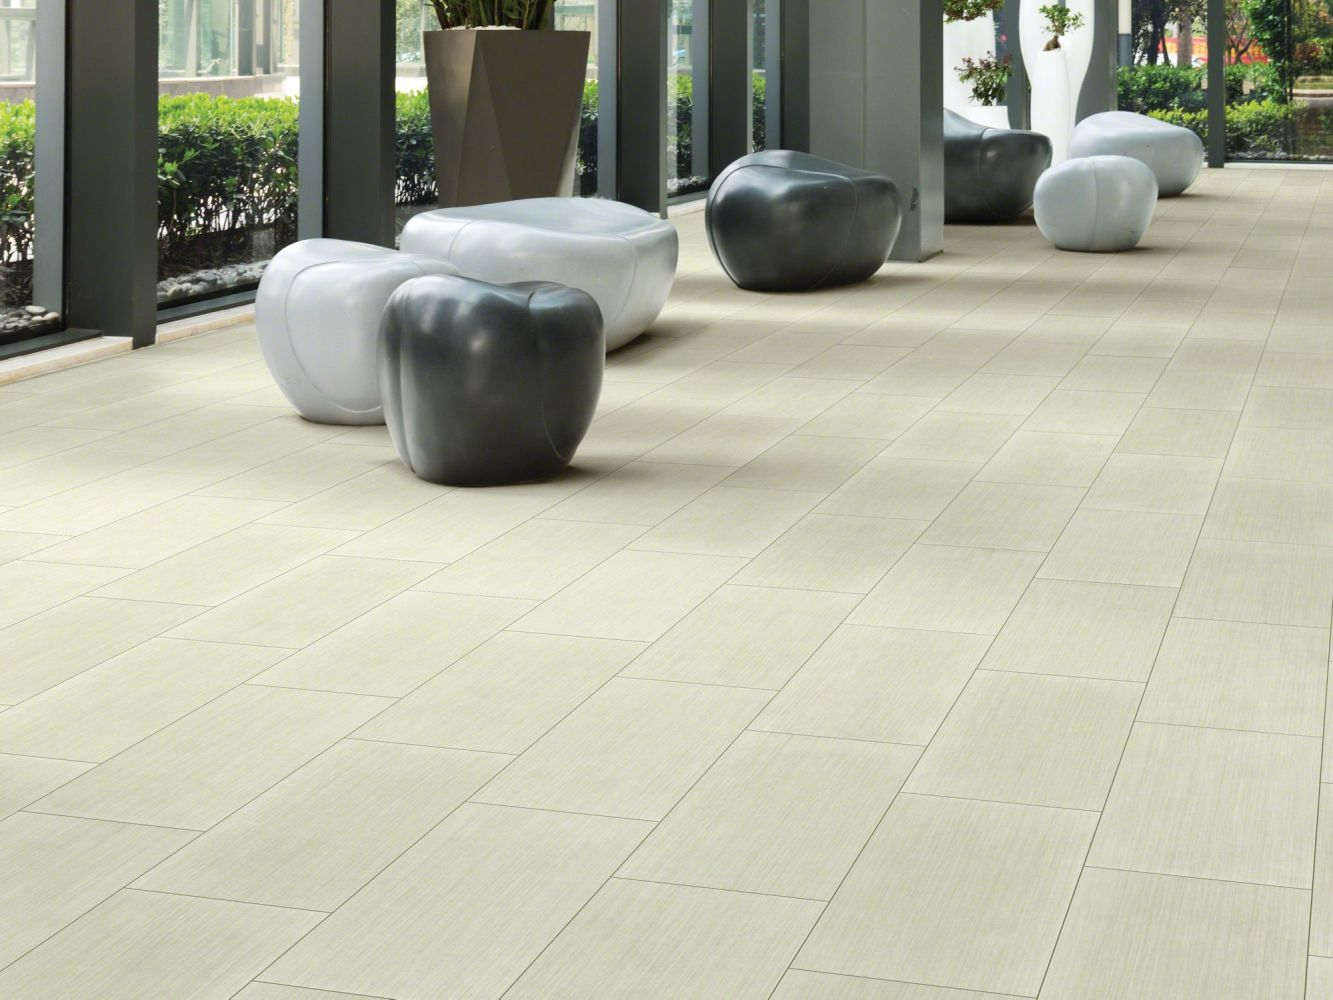 Shaw Floors Resilient Residential Intrepid Tile Plus Arid 00162_2026V